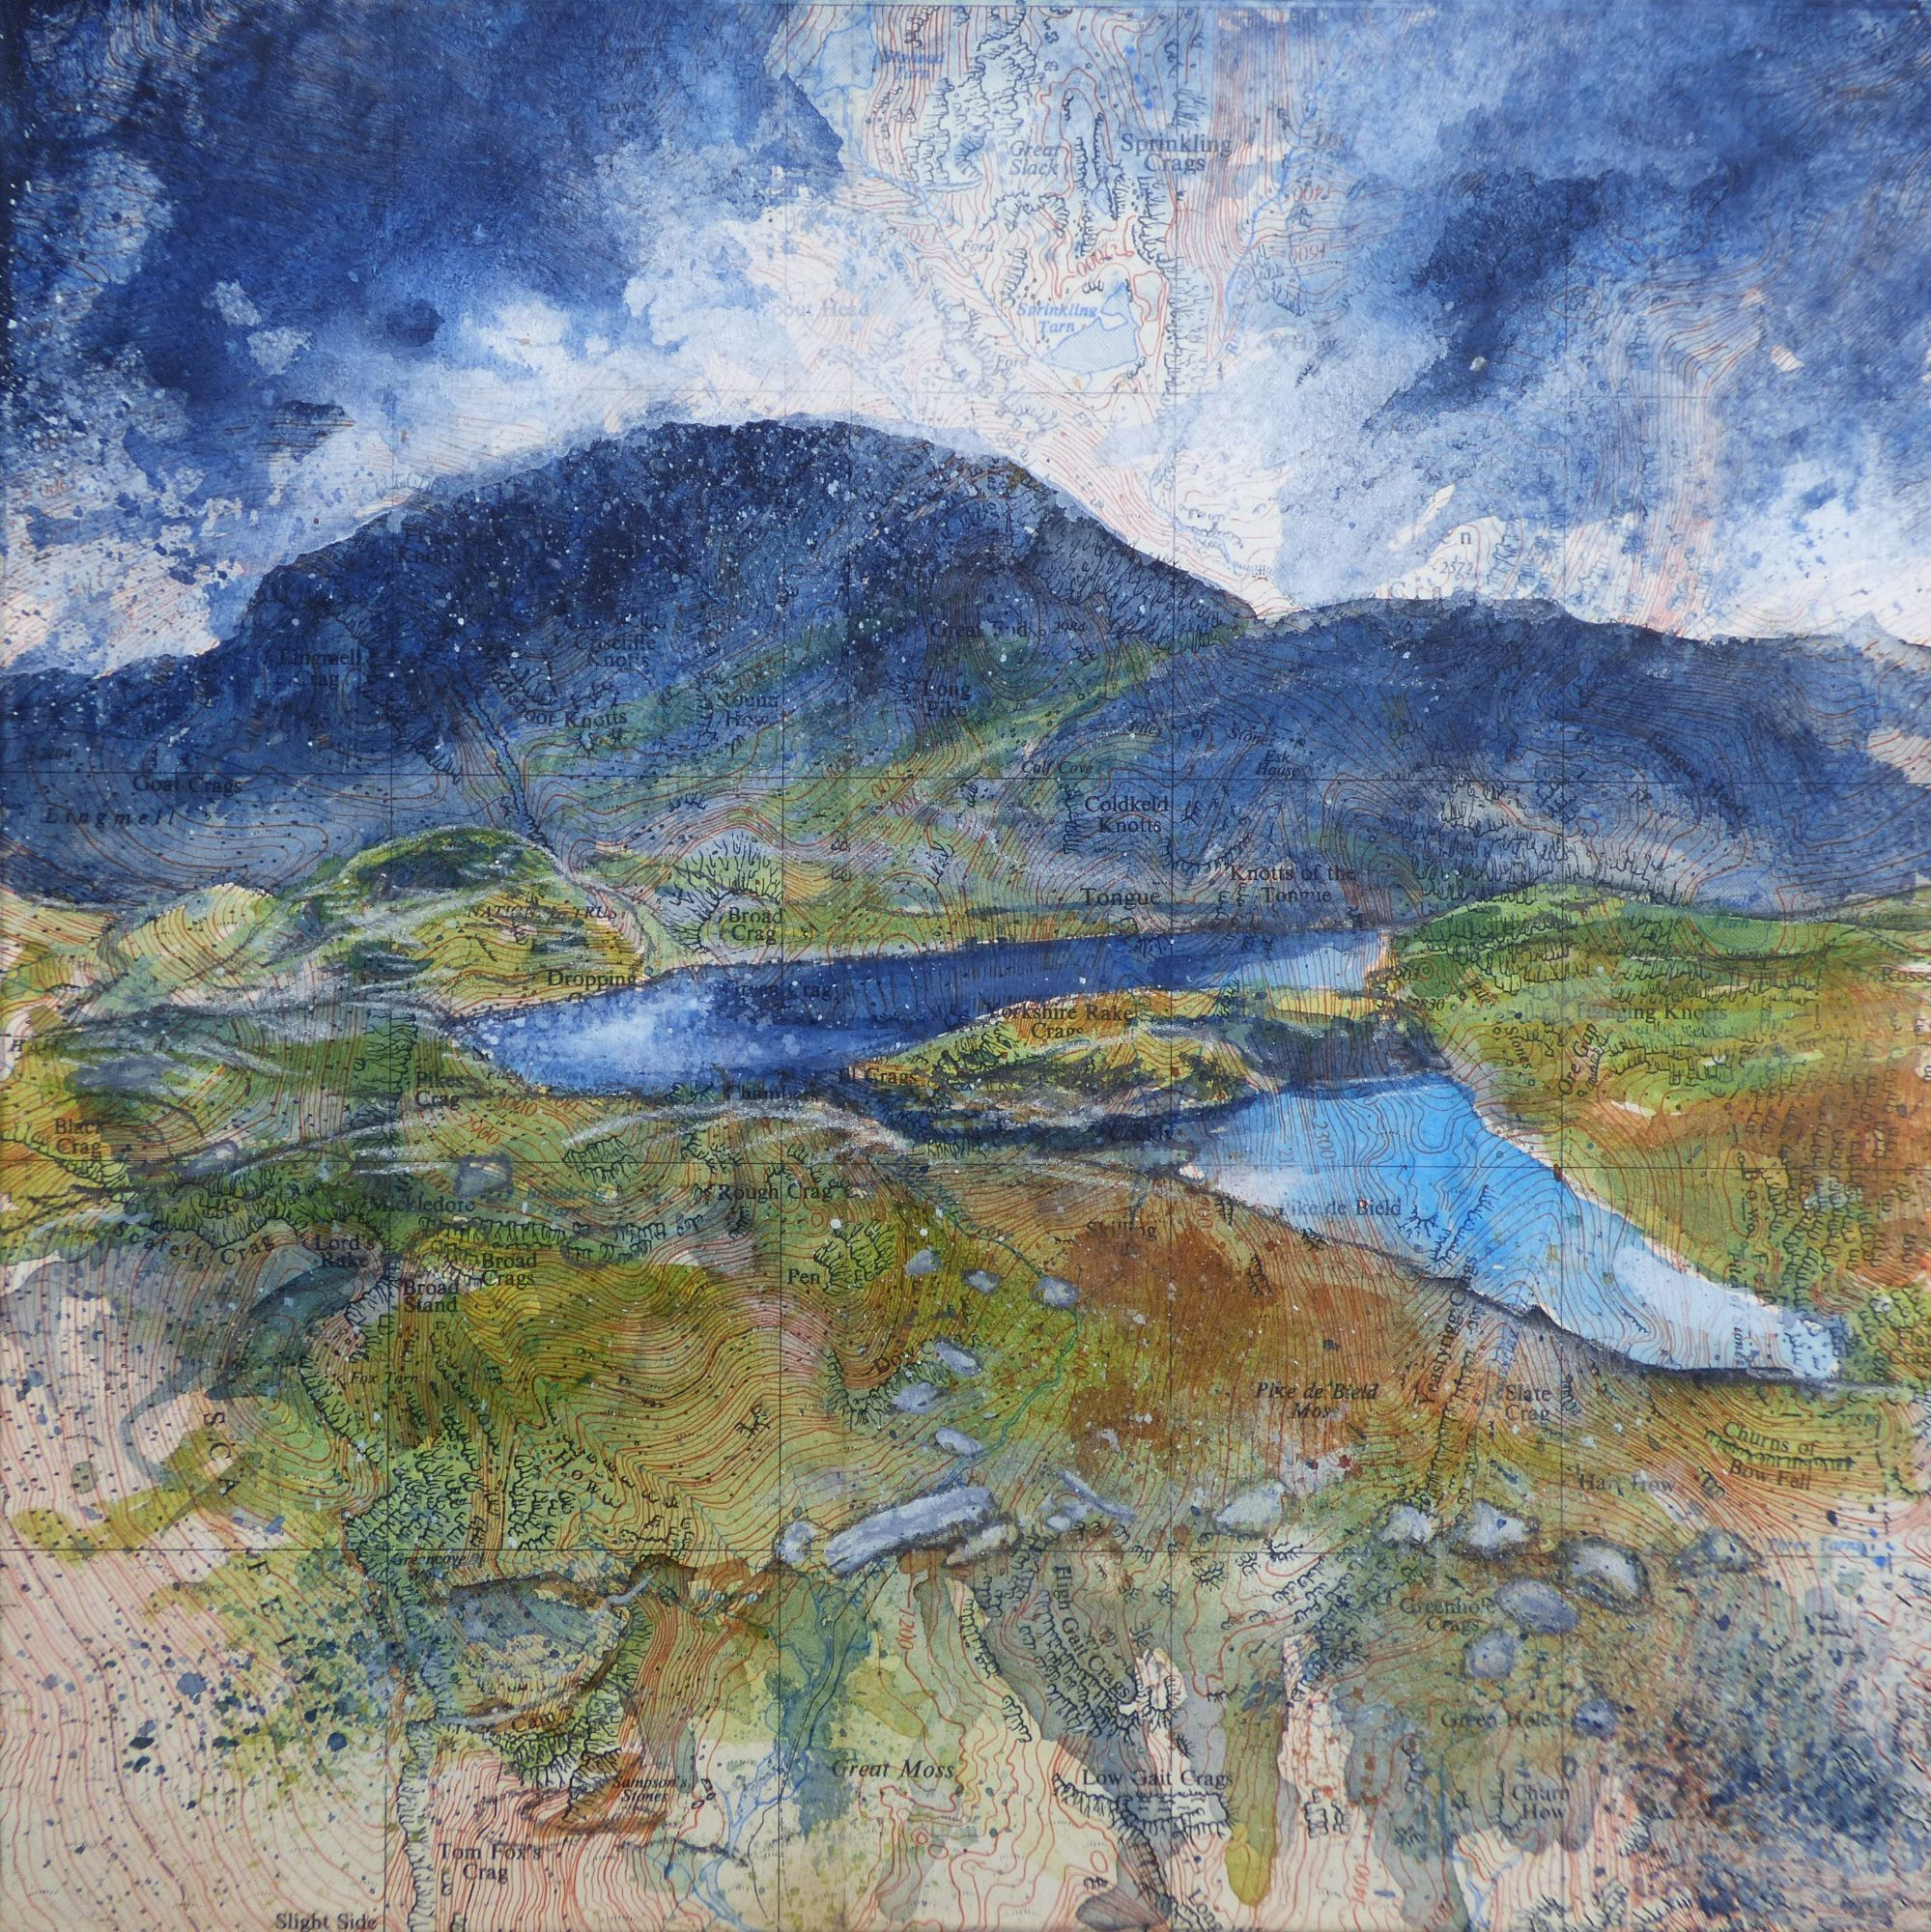 Sprinkling Tarn painting